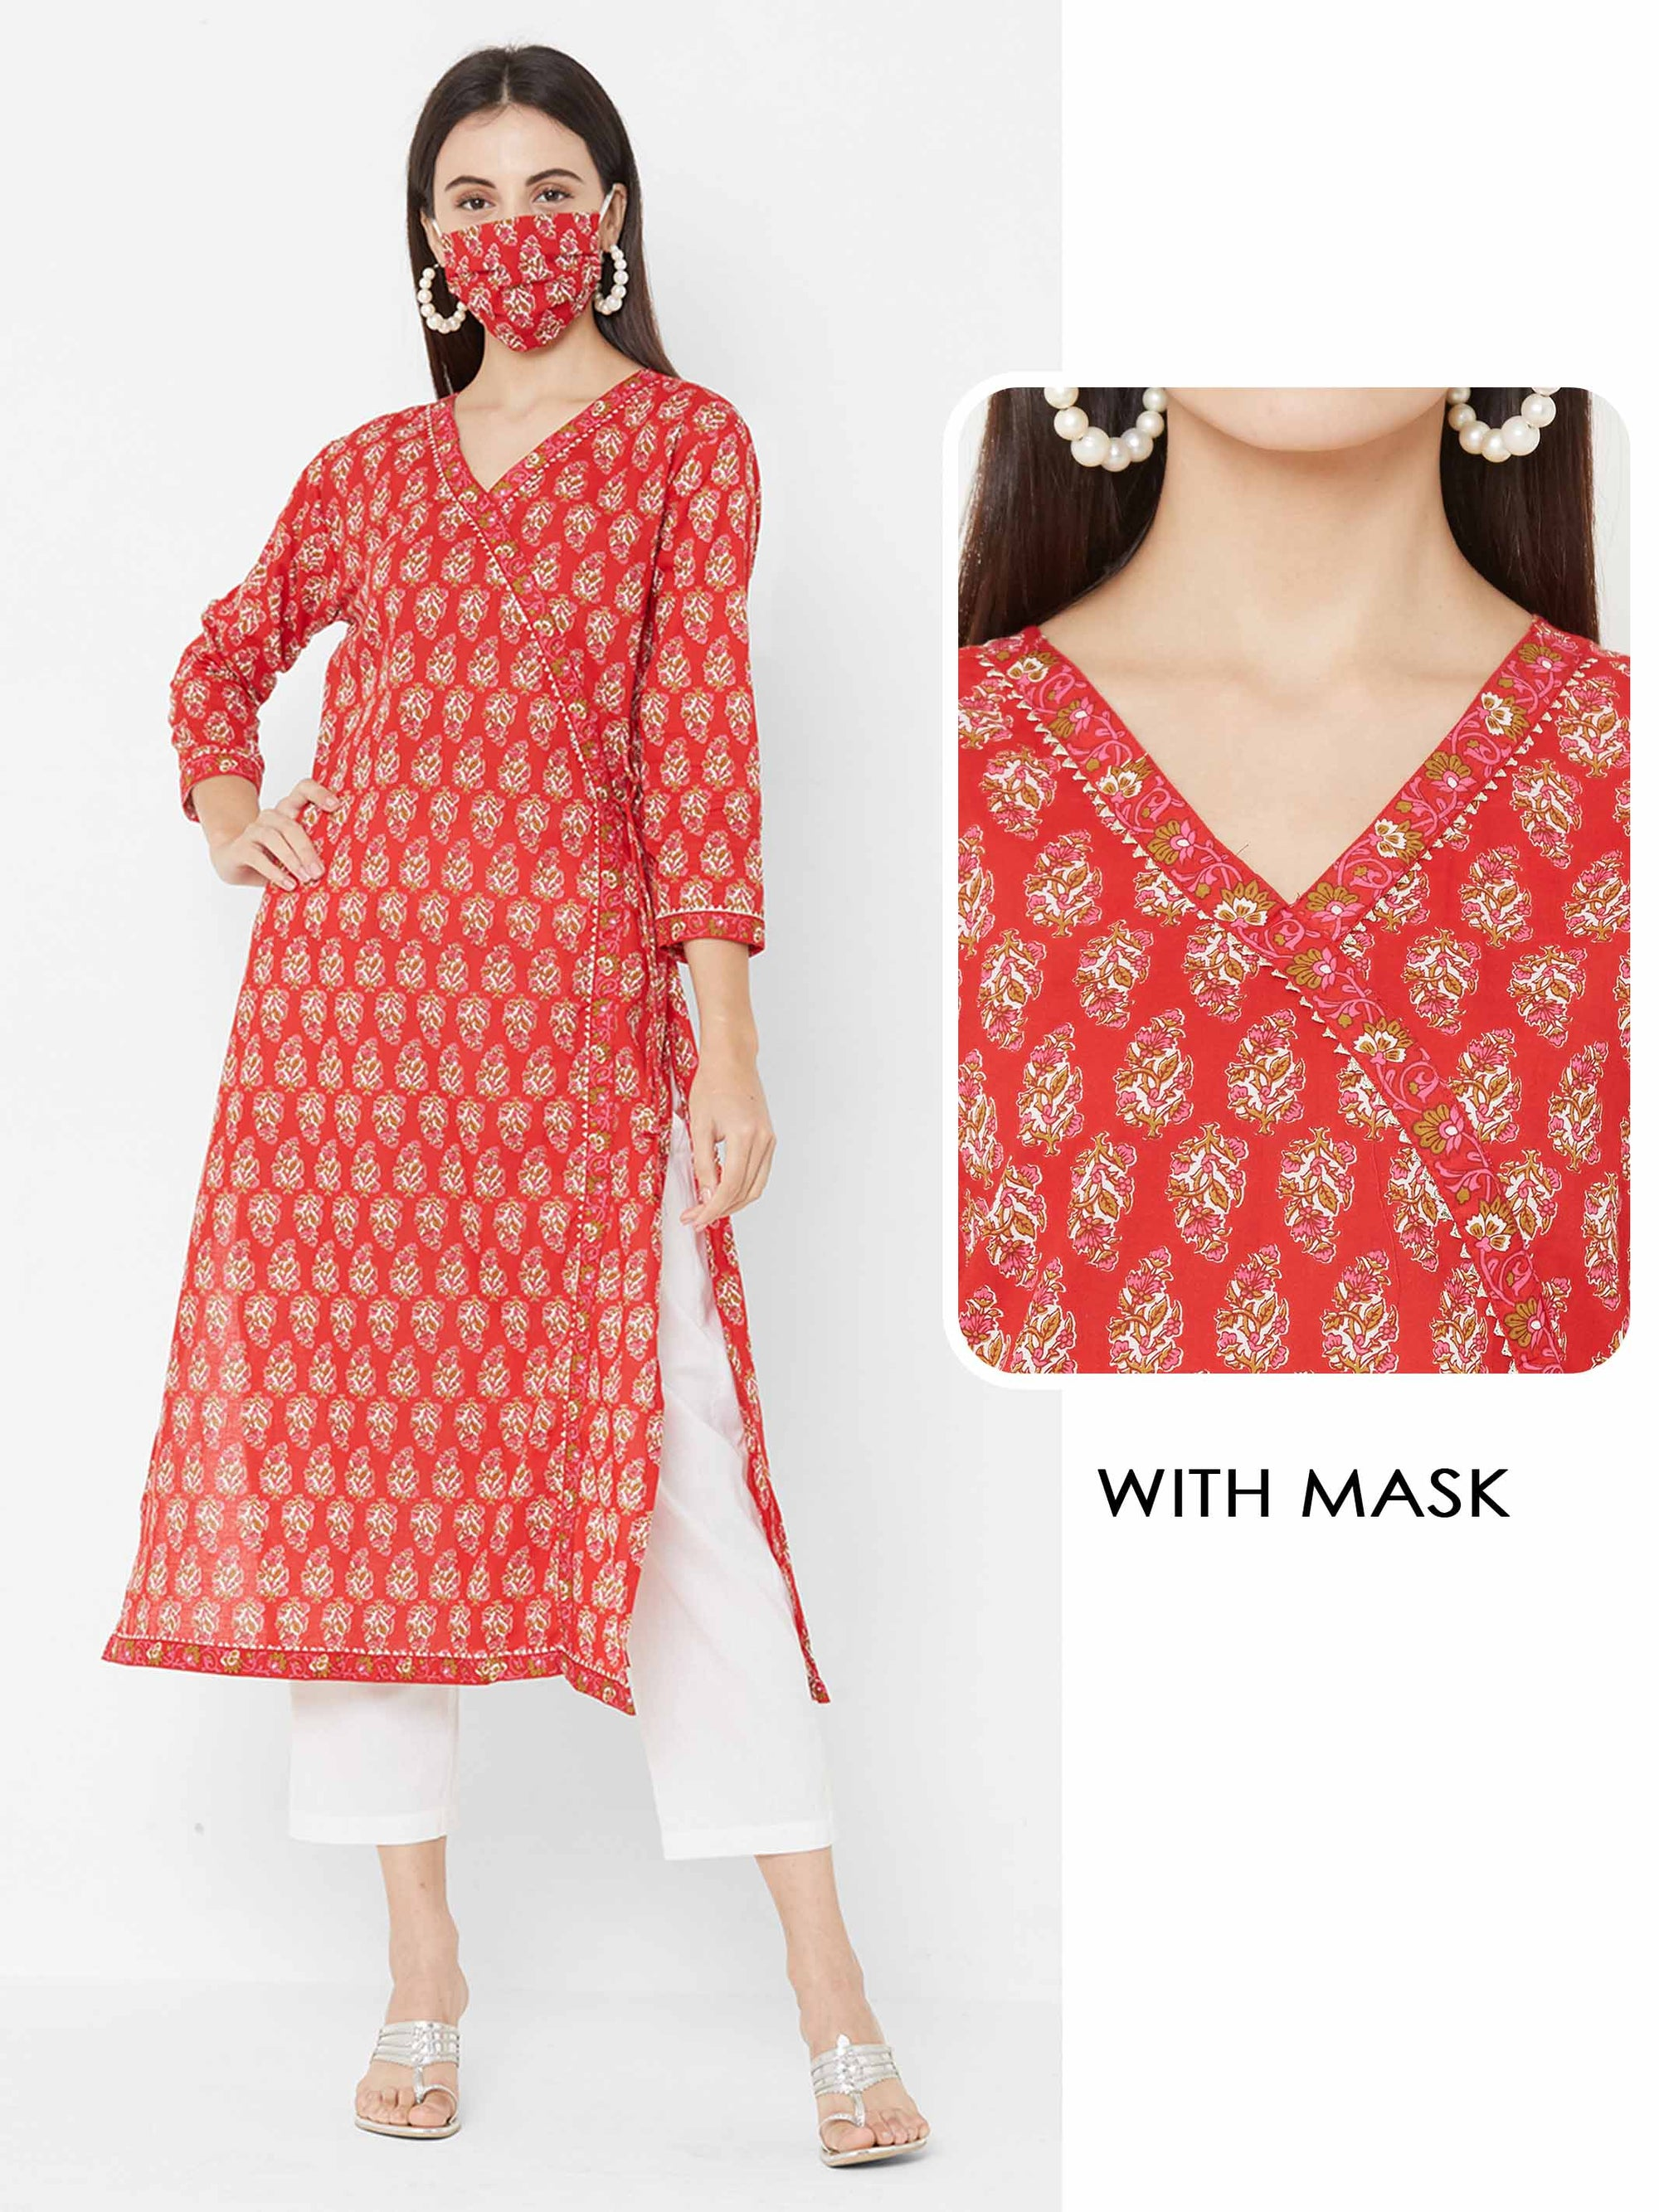 Block Printed Floral Dense Printed Angarakha Kurta with printed 2 Ply Mask – Red